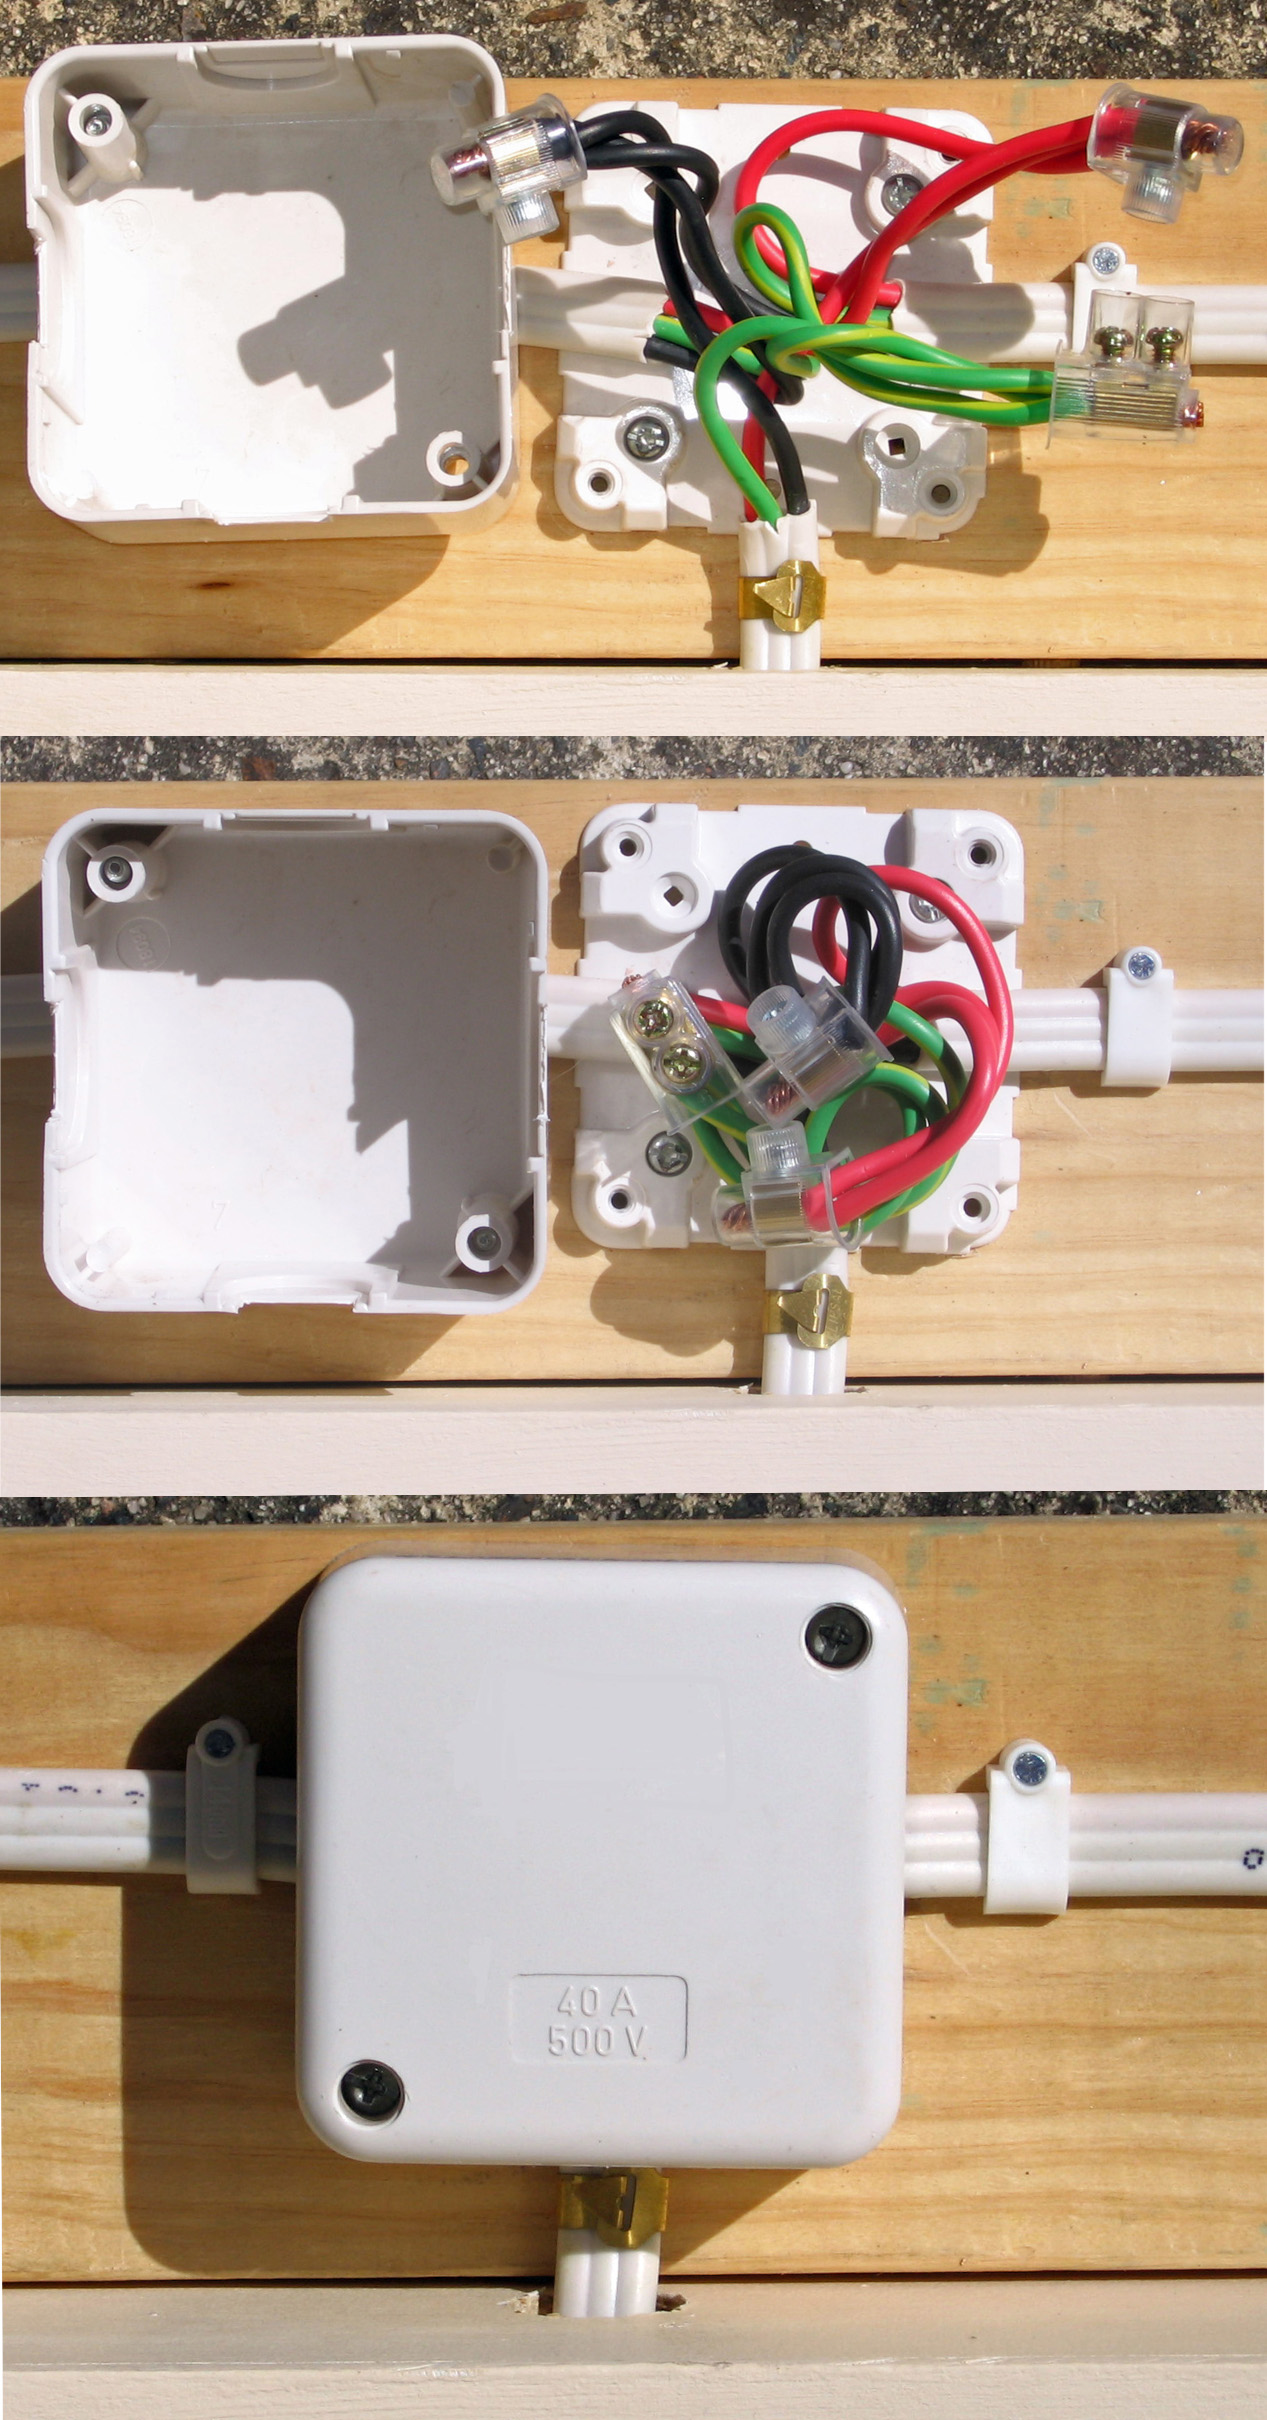 file australian internal surface mounted junction box jpg rh commons wikimedia org Electrical Junction Box Installation Electrical Junction Box Installation